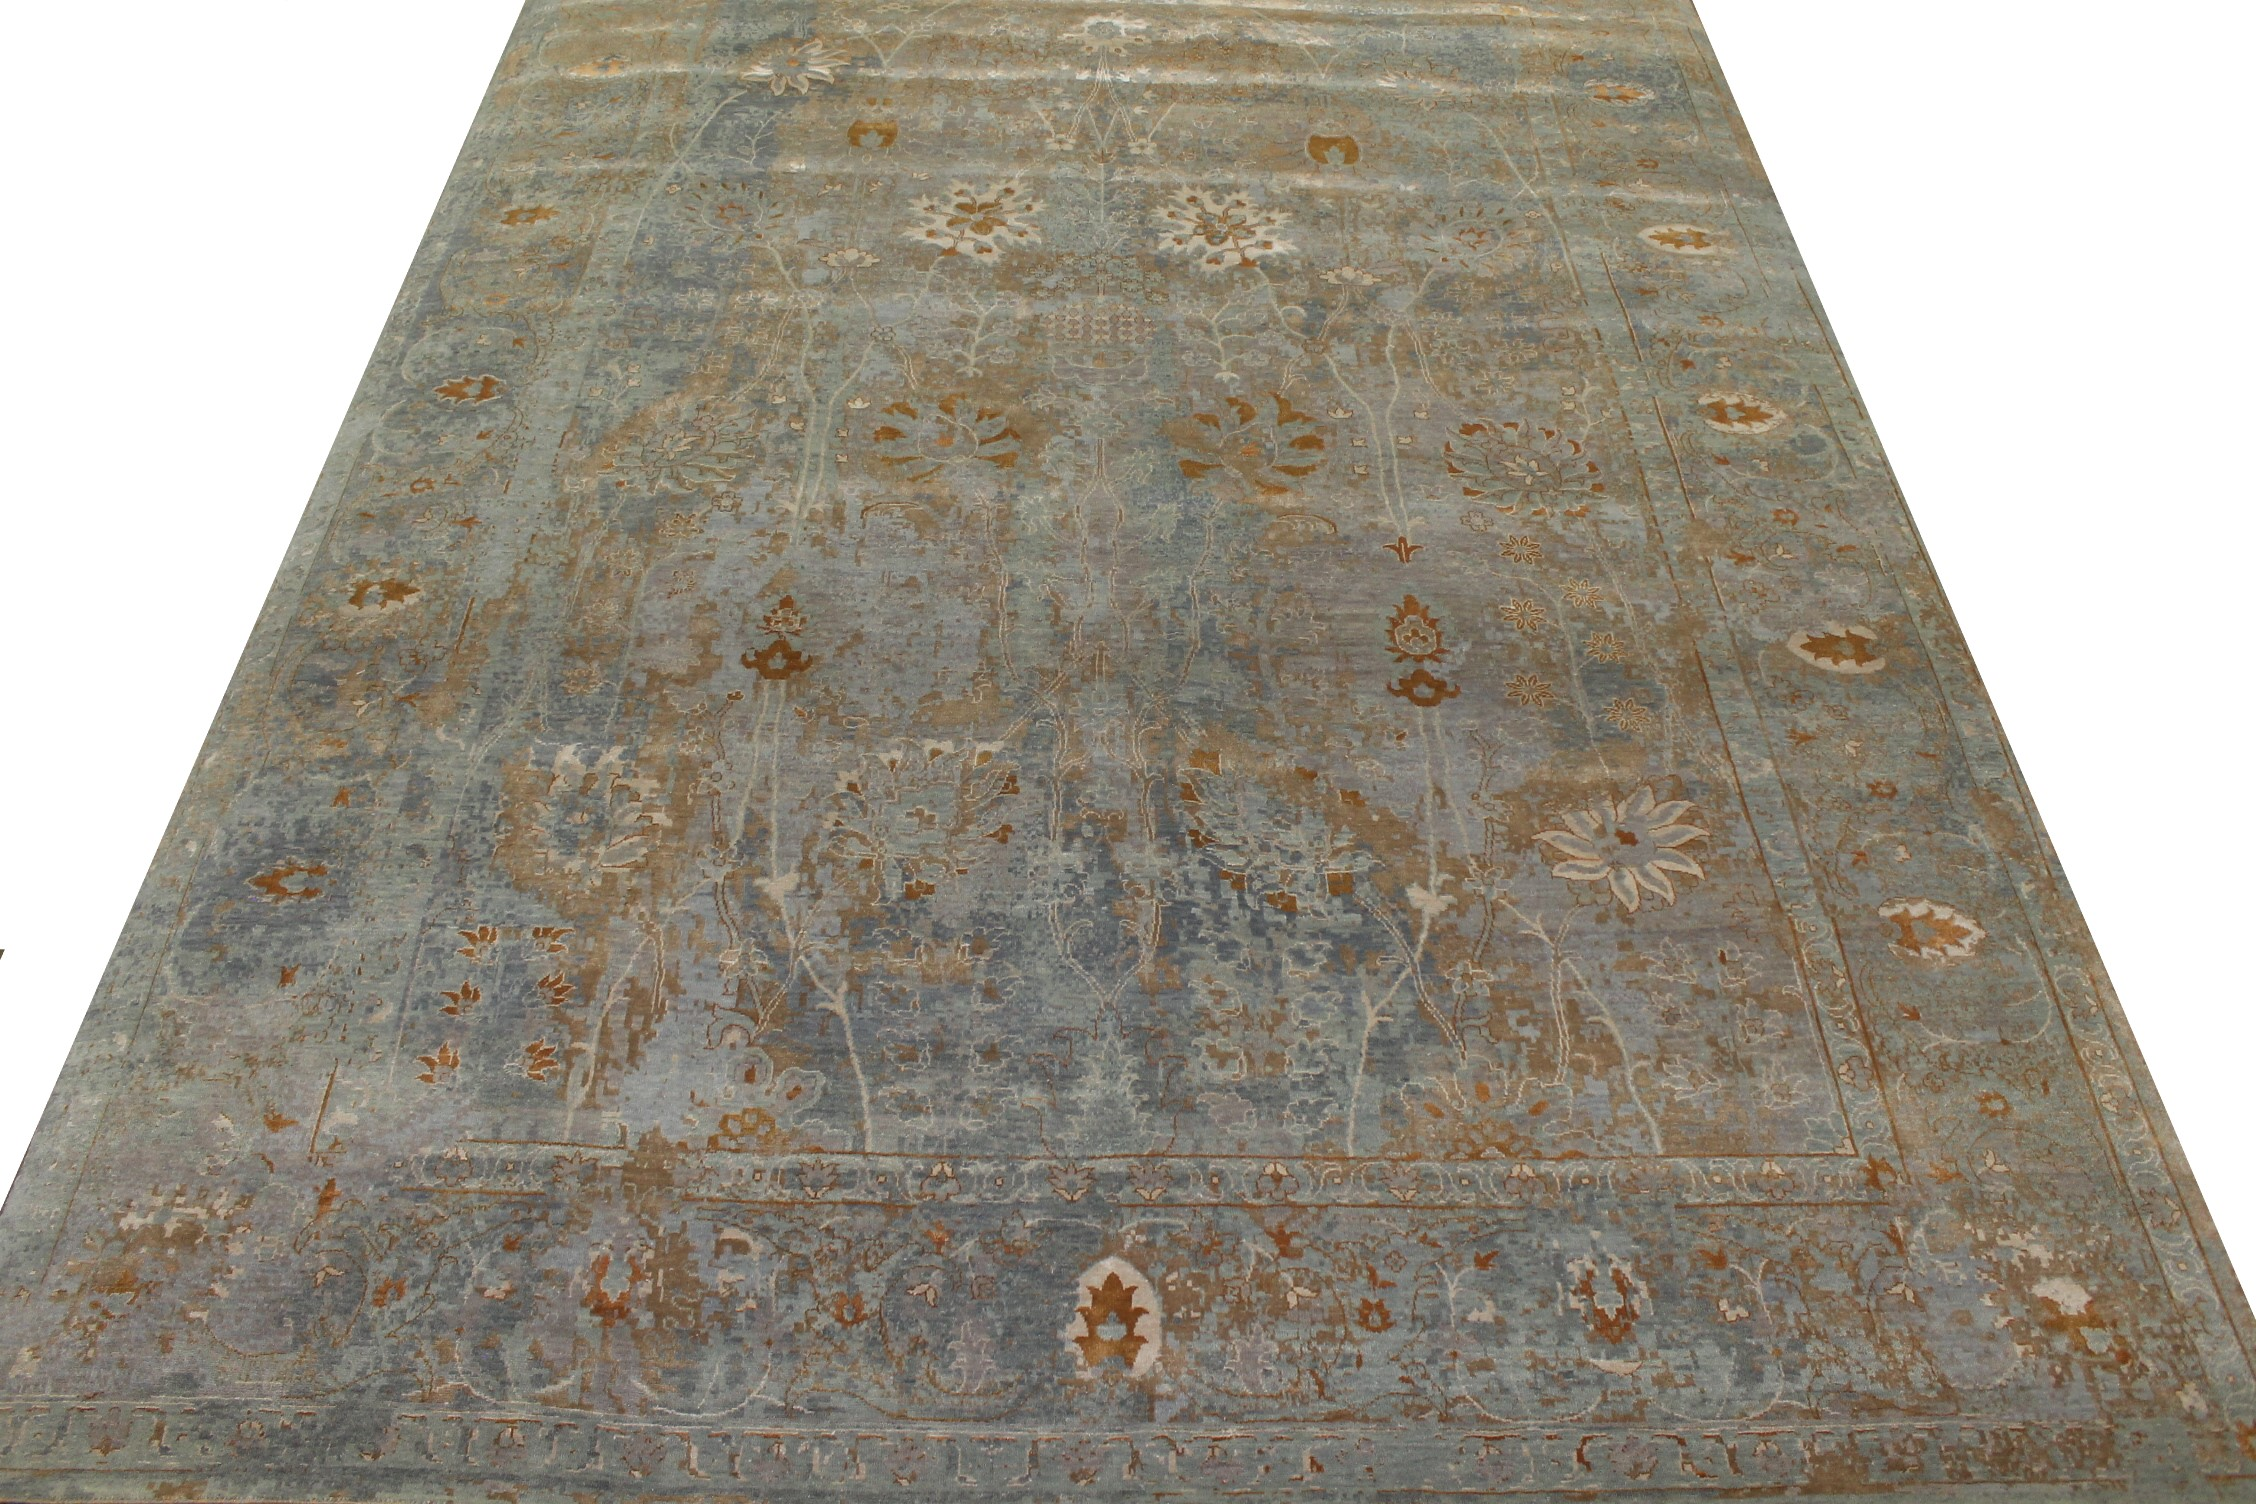 10x14 Transitional Hand Knotted Viscose Area Rug - MR023574